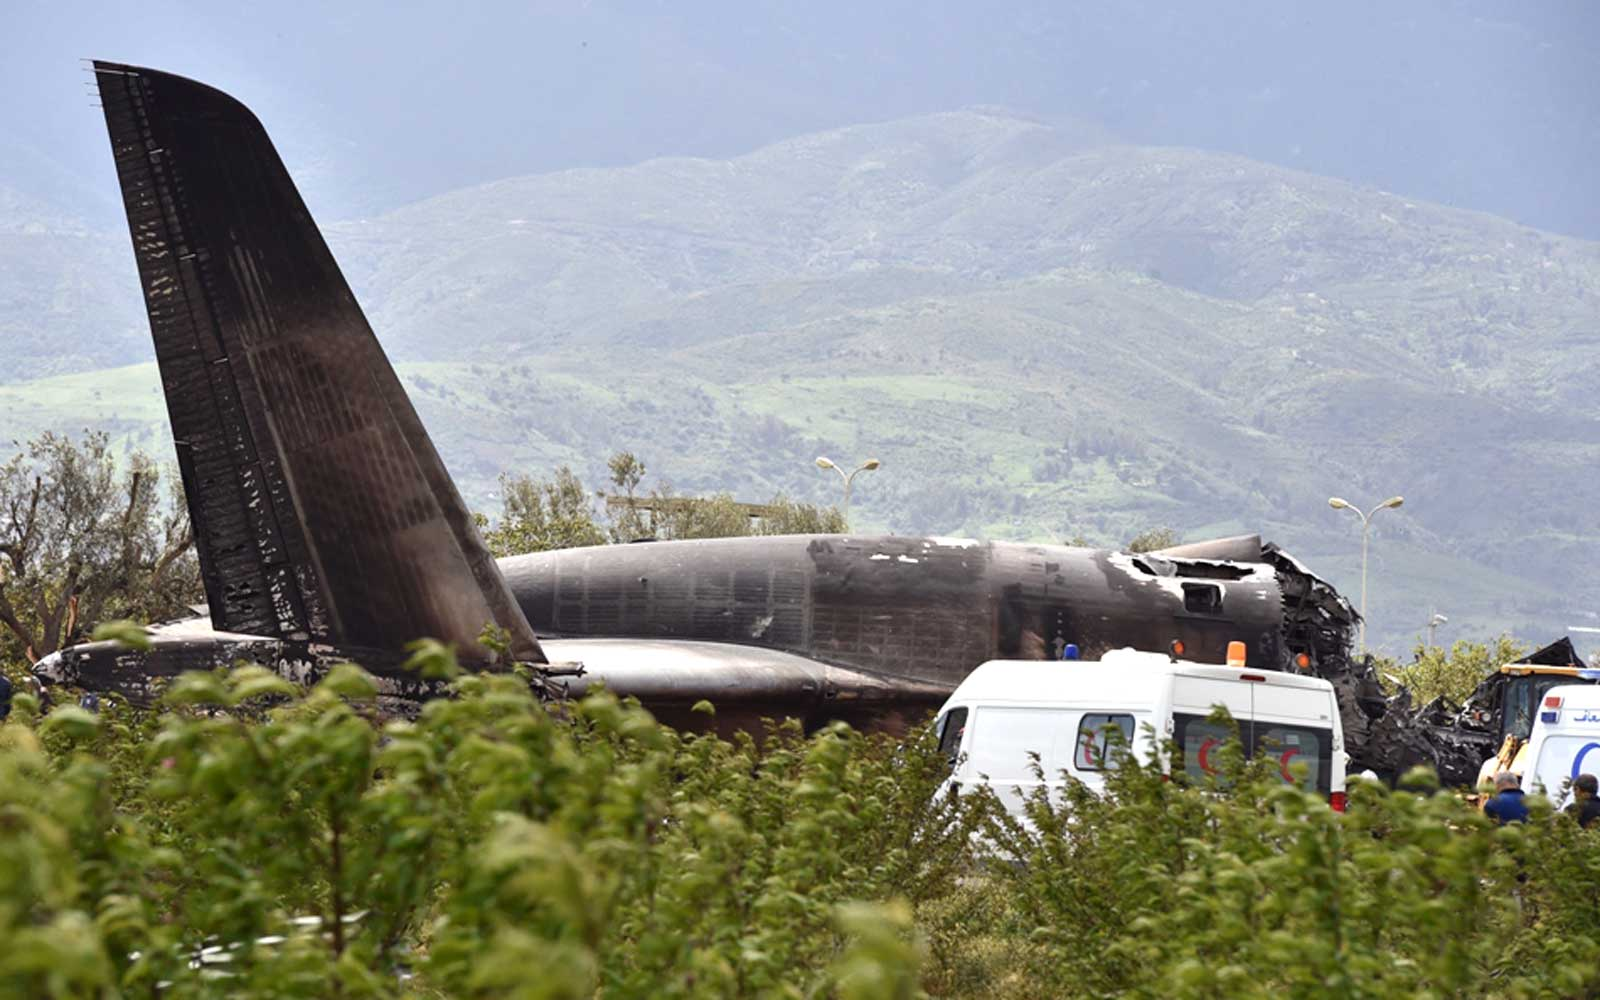 Algerian army plane which crashed near the Boufarik airbase from where the plane had taken off on April 11, 2018.